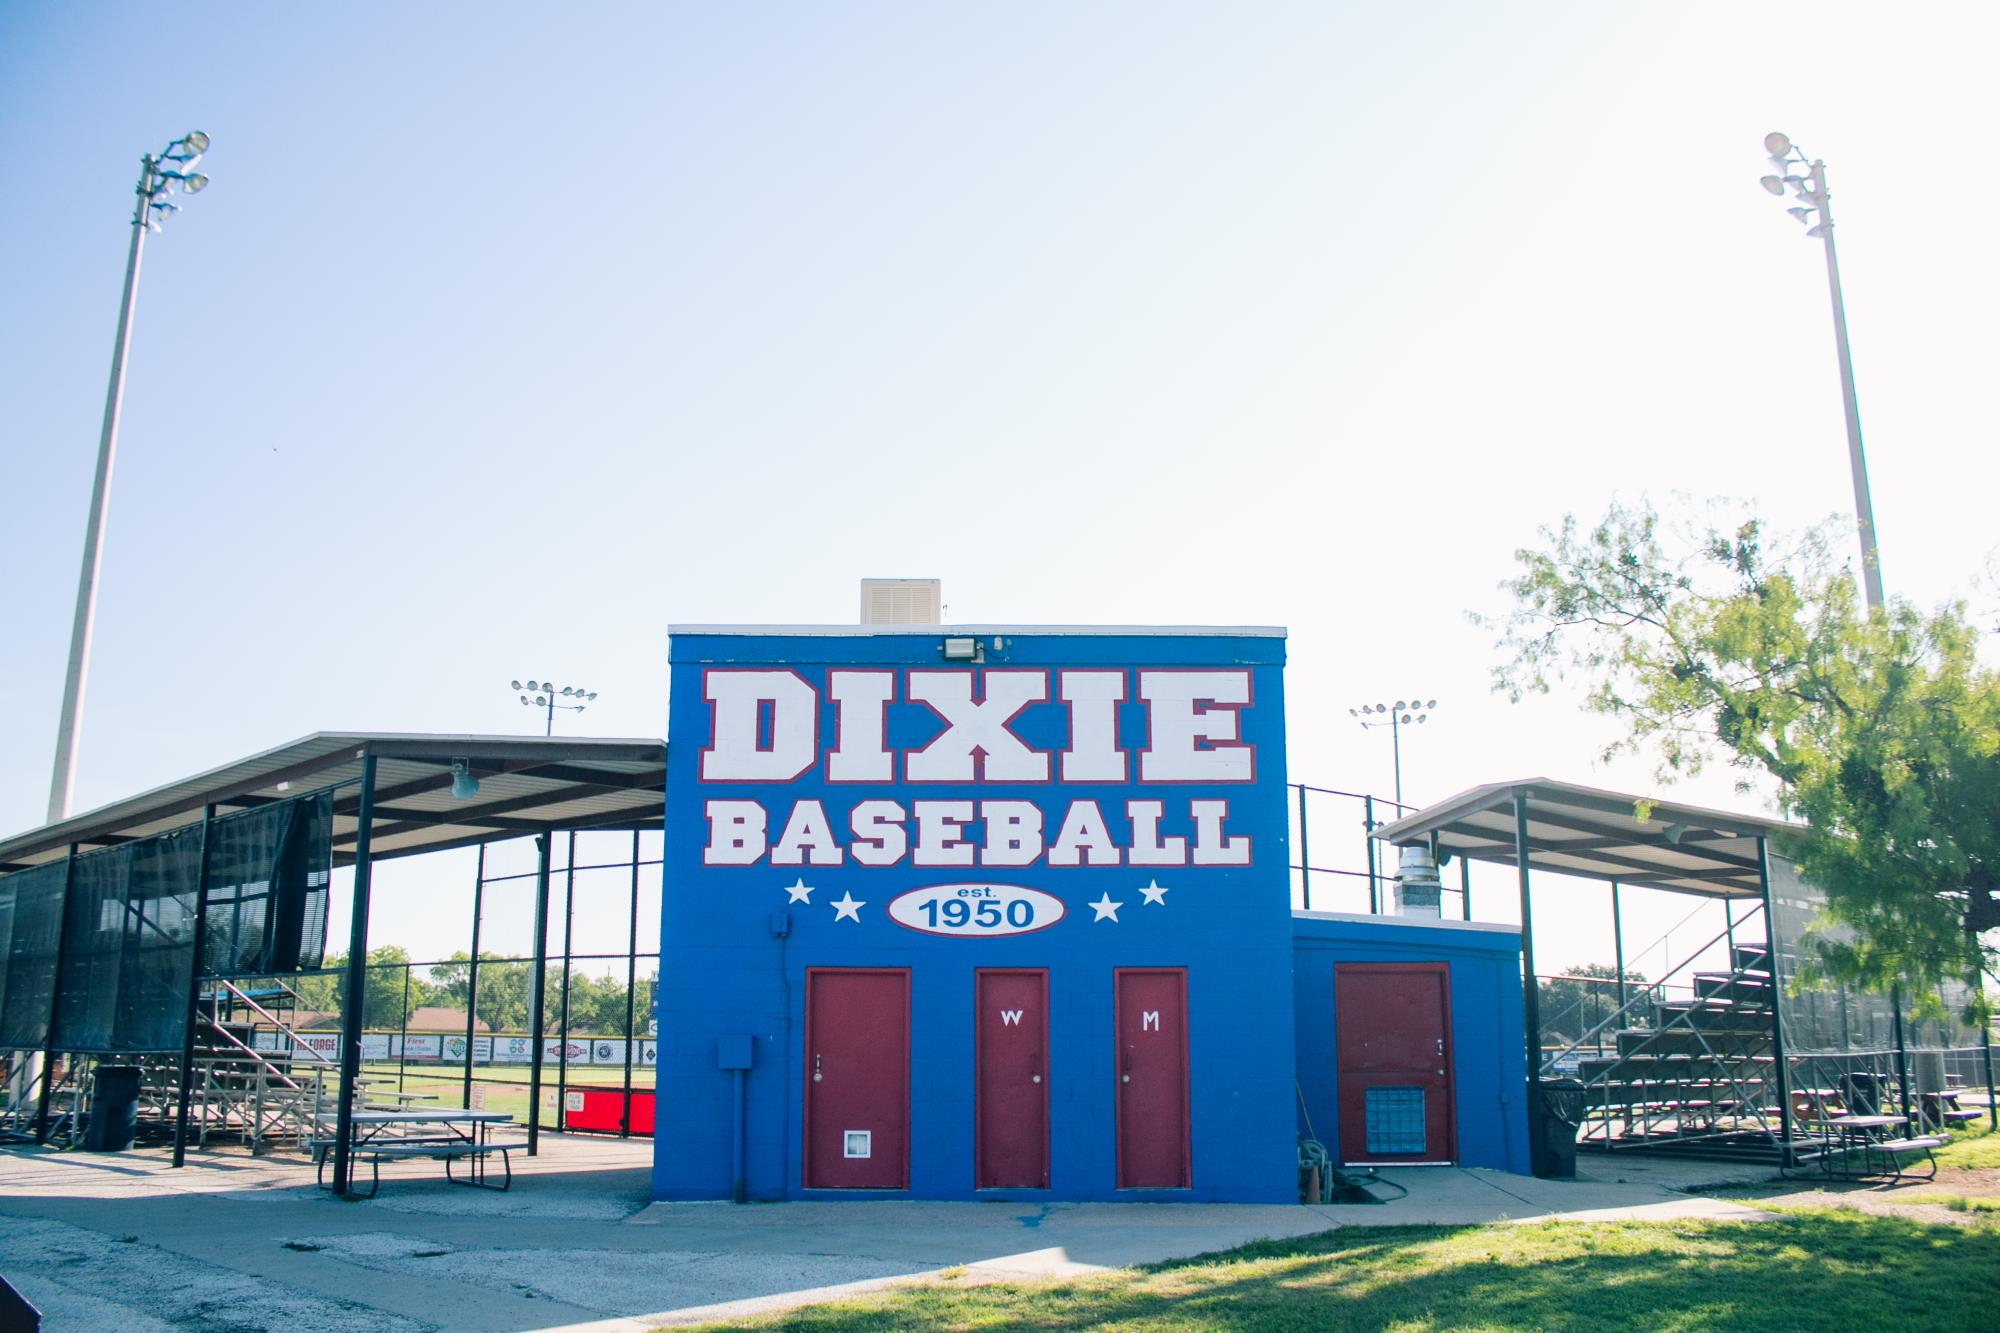 Blue Ballfield Building Reading Dixie Baseball on the Outside Wall